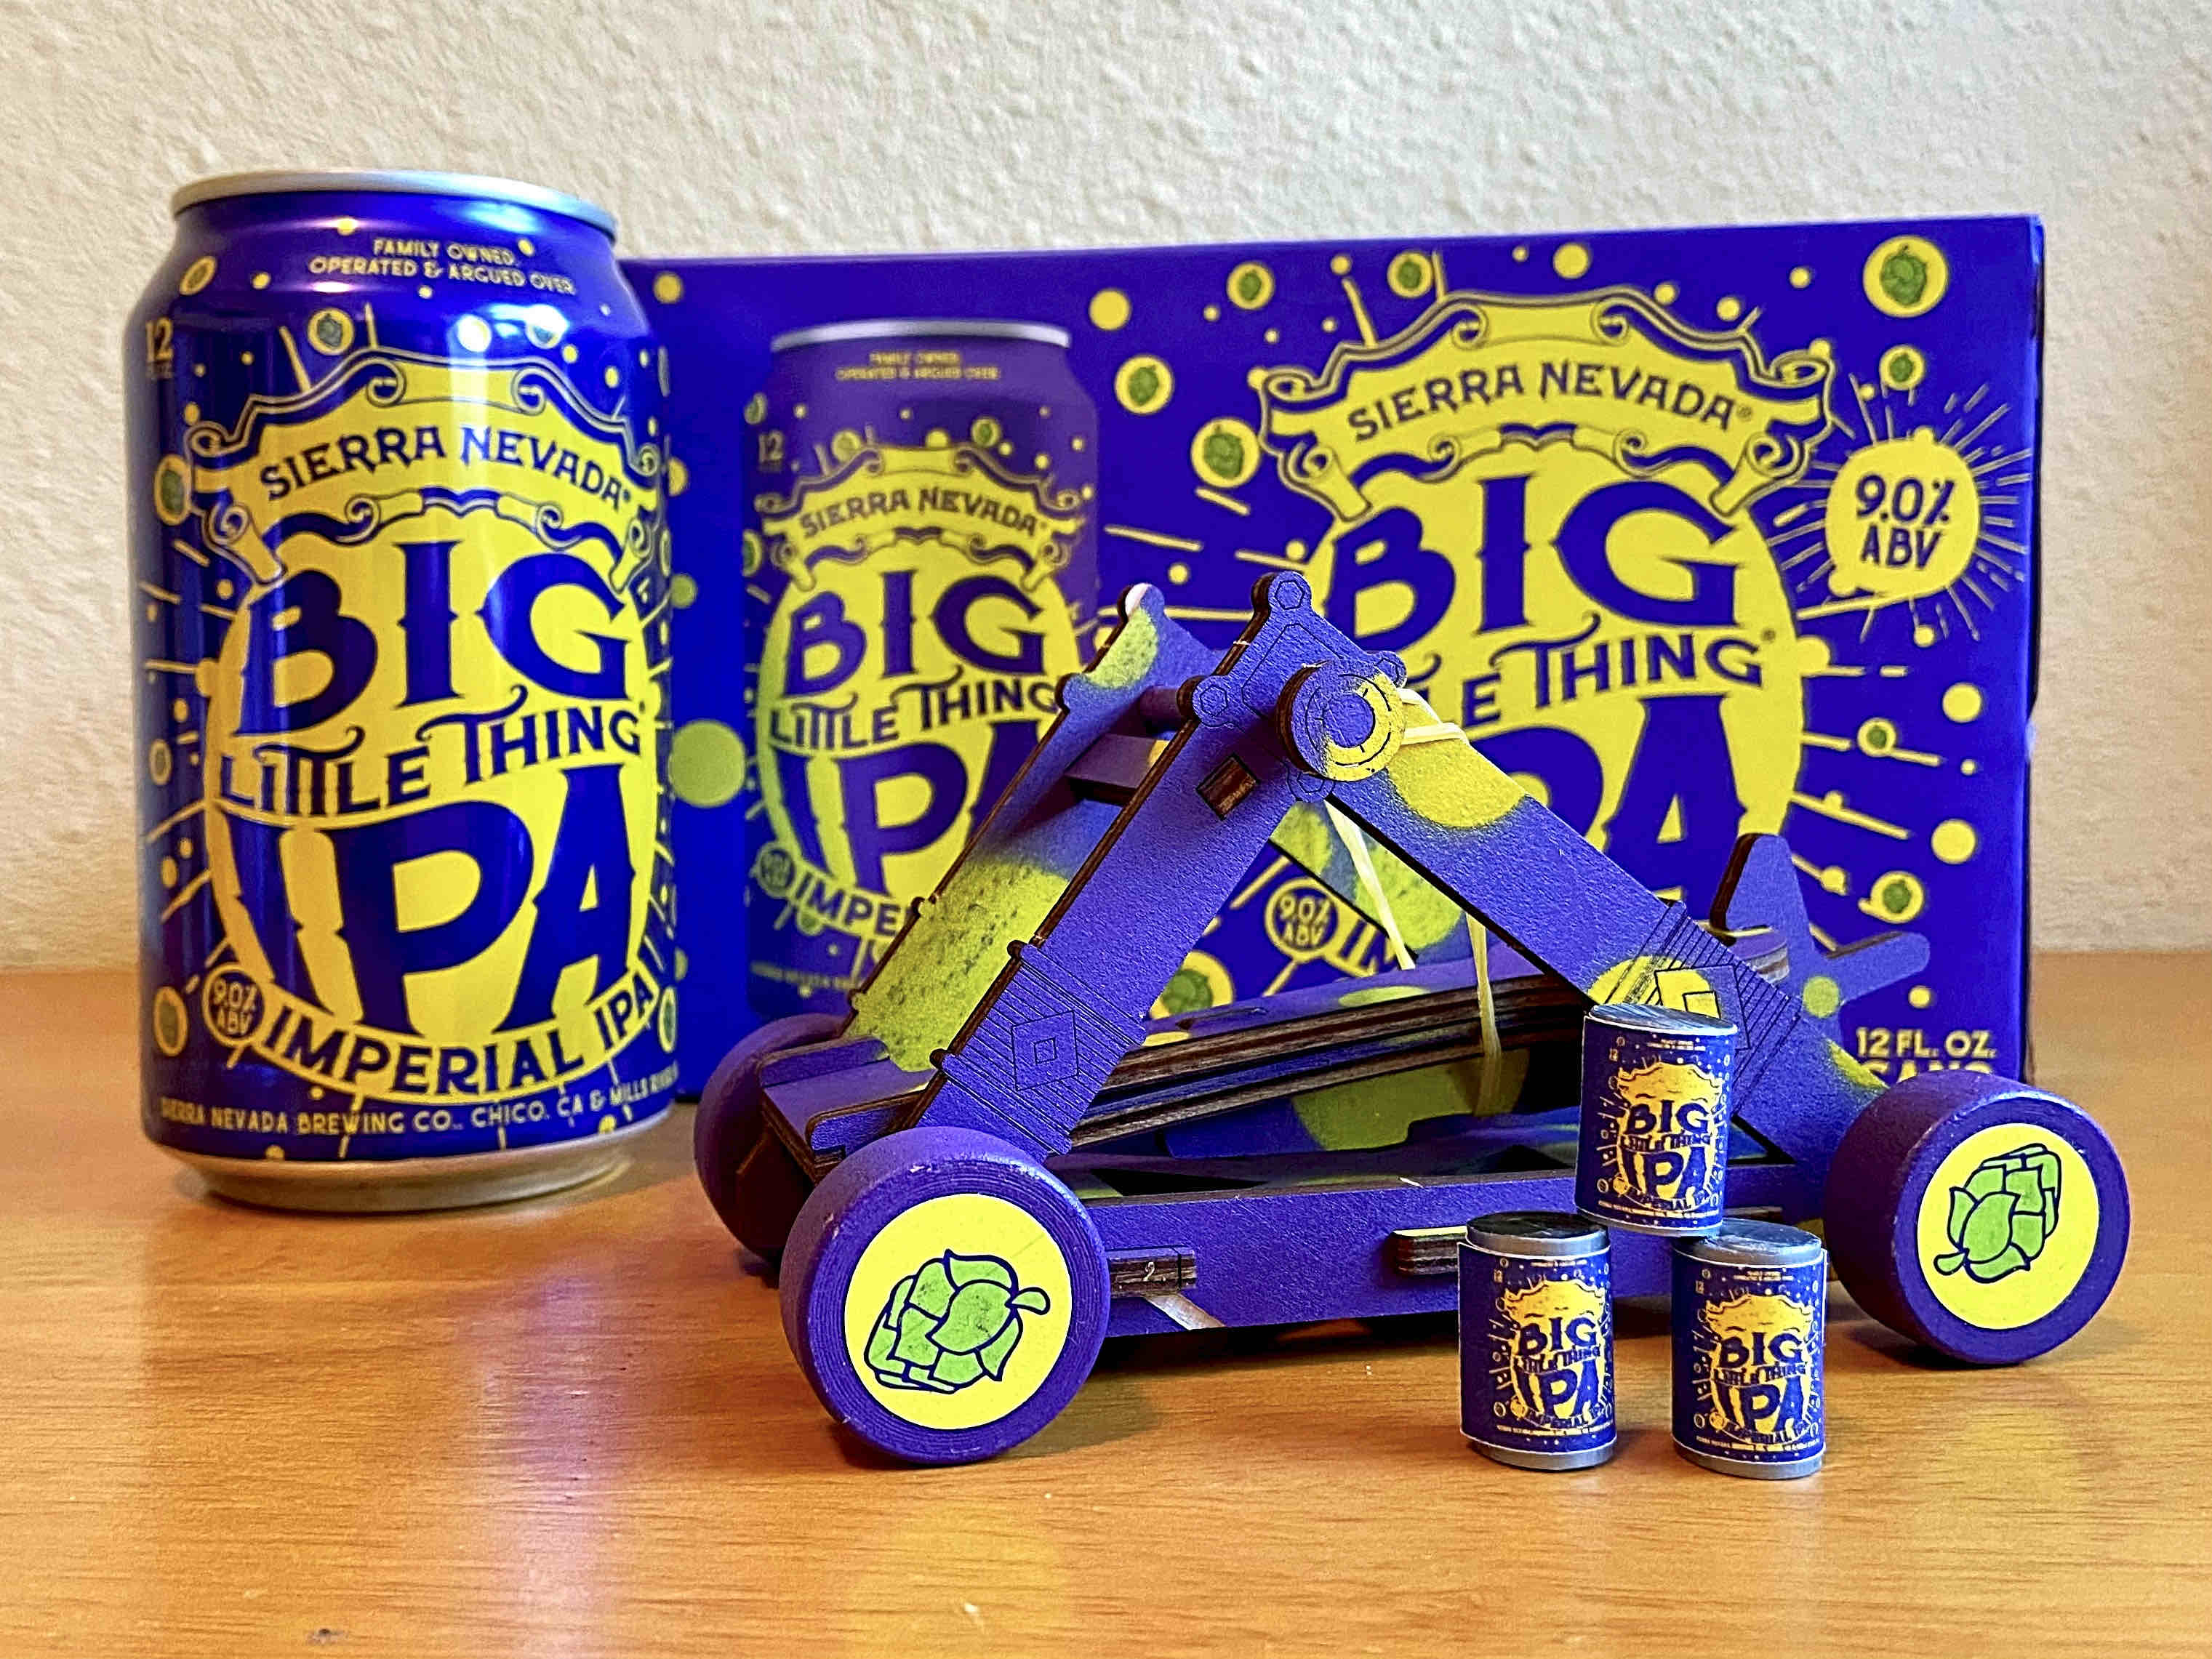 Sierra Nevada Brewing To catapult a keg of Big Little Thing Imperial IPA. (Note, this is not the actual catapult that will be used on March 9, 2021)